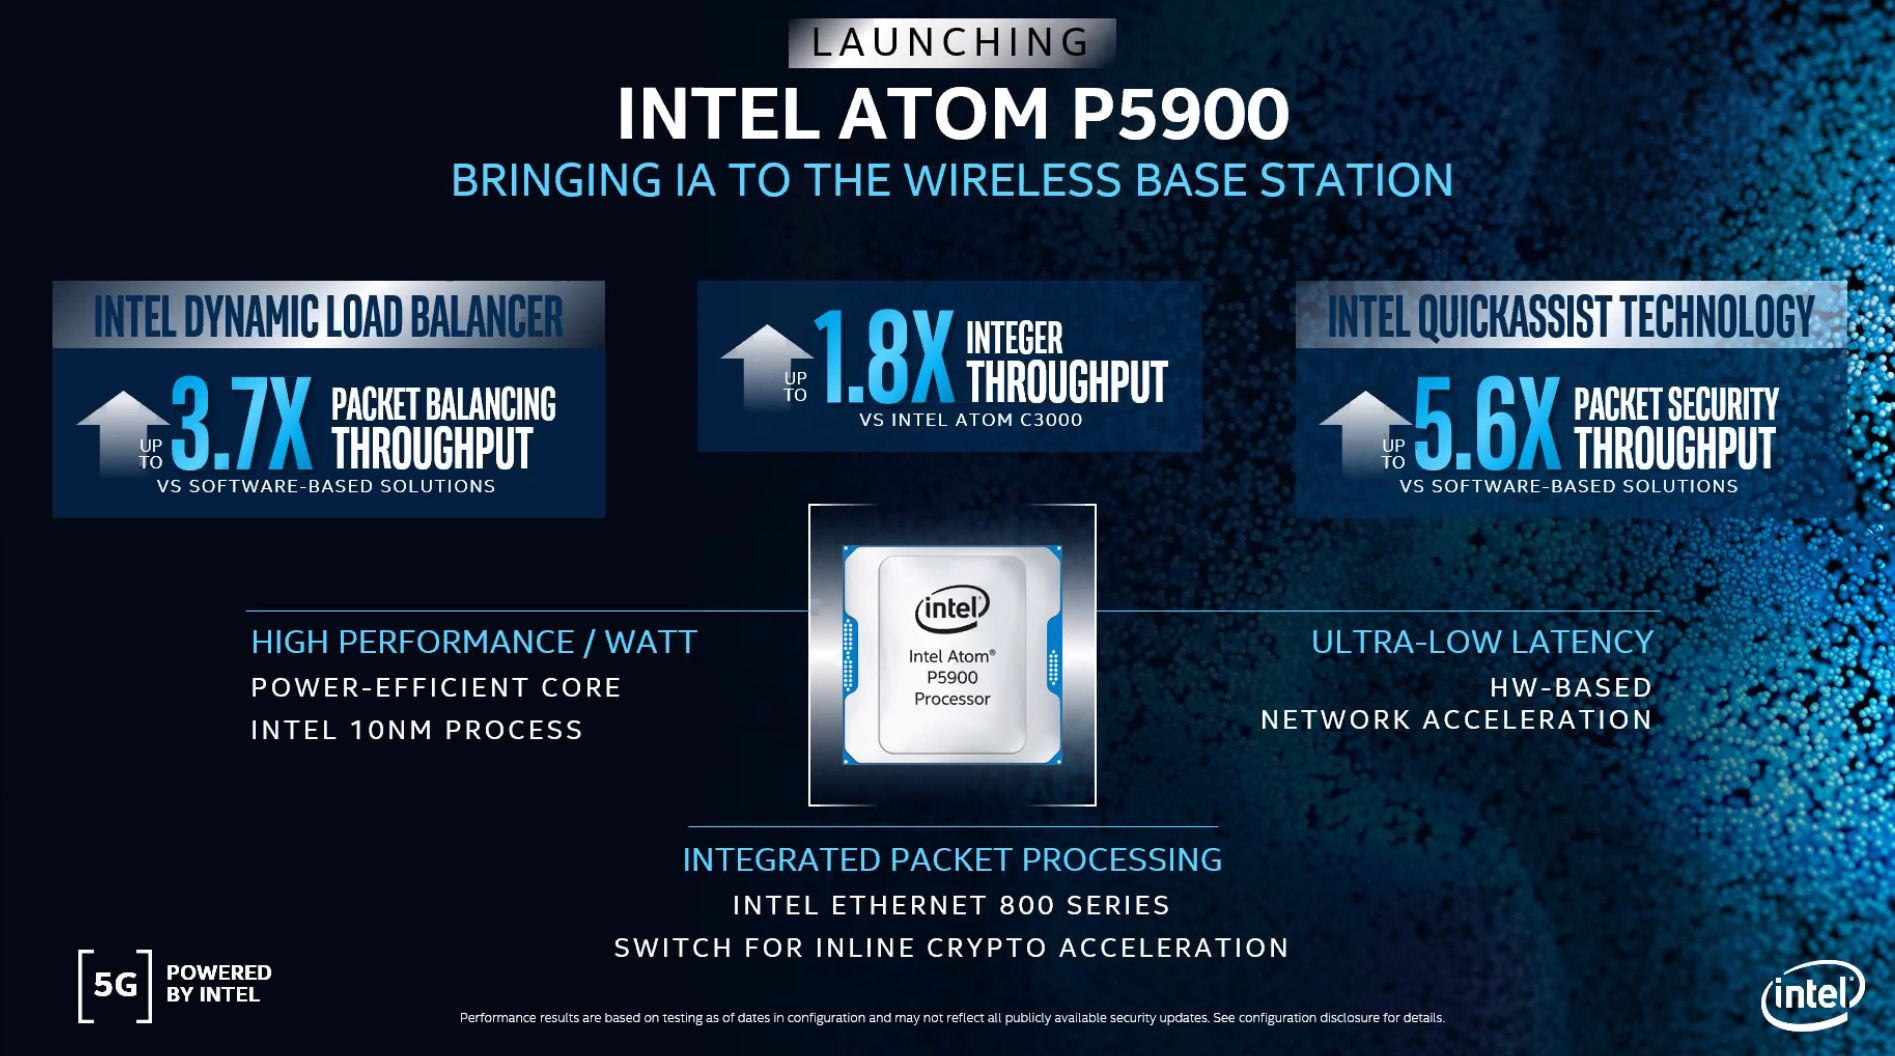 Intel Atom P5900 Overview Slide